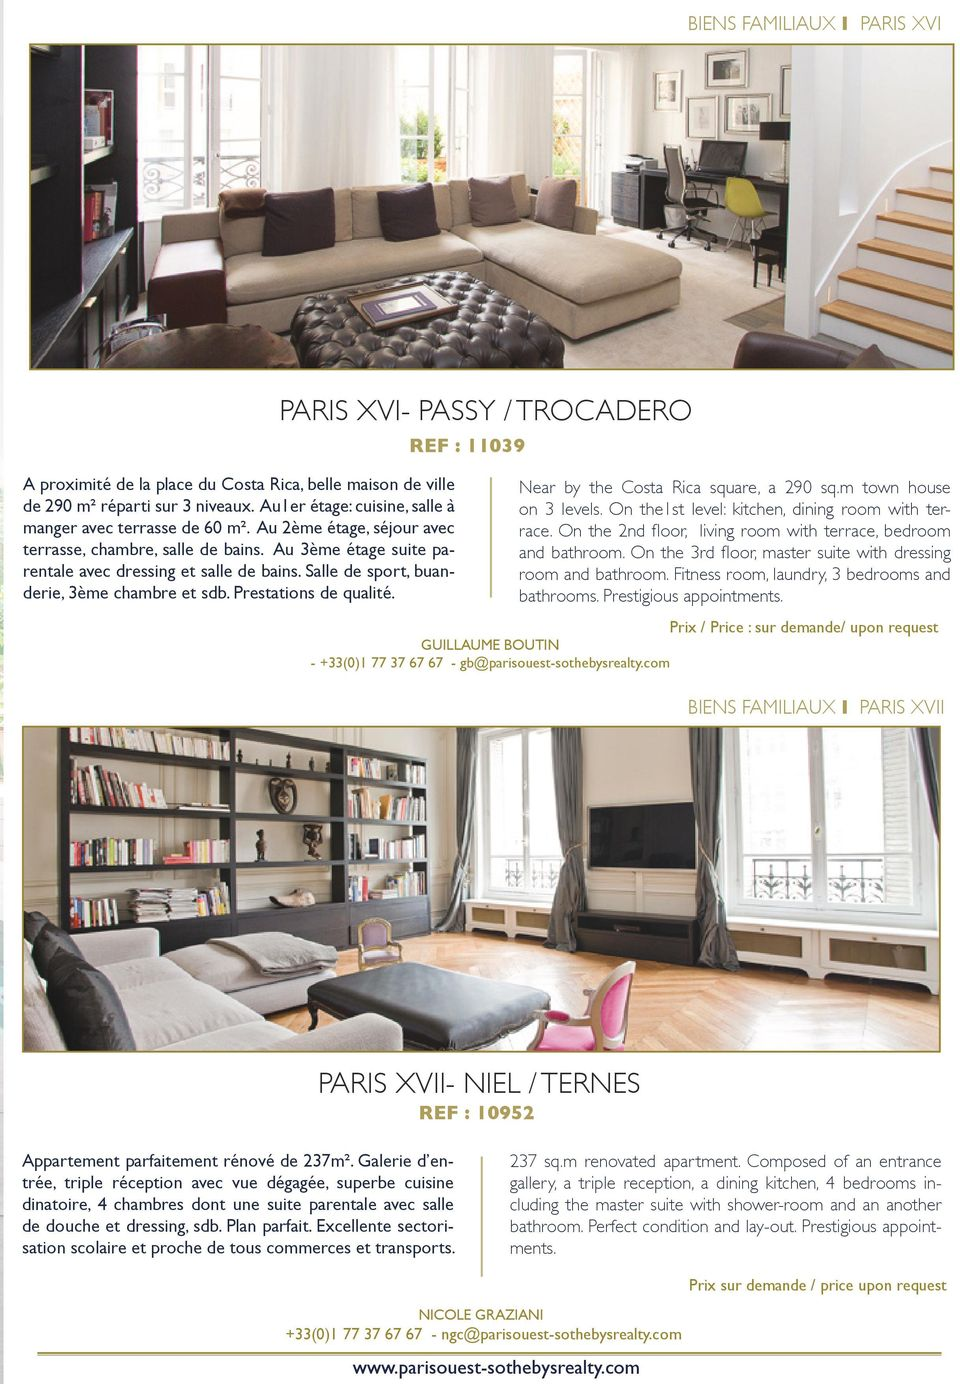 PARIS XVI- PASSY / TROCADERO REF : 11039 Near by the Costa Rica square, a 290 sq.m town house on 3 levels. On the1st level: kitchen, dining room with terrace.